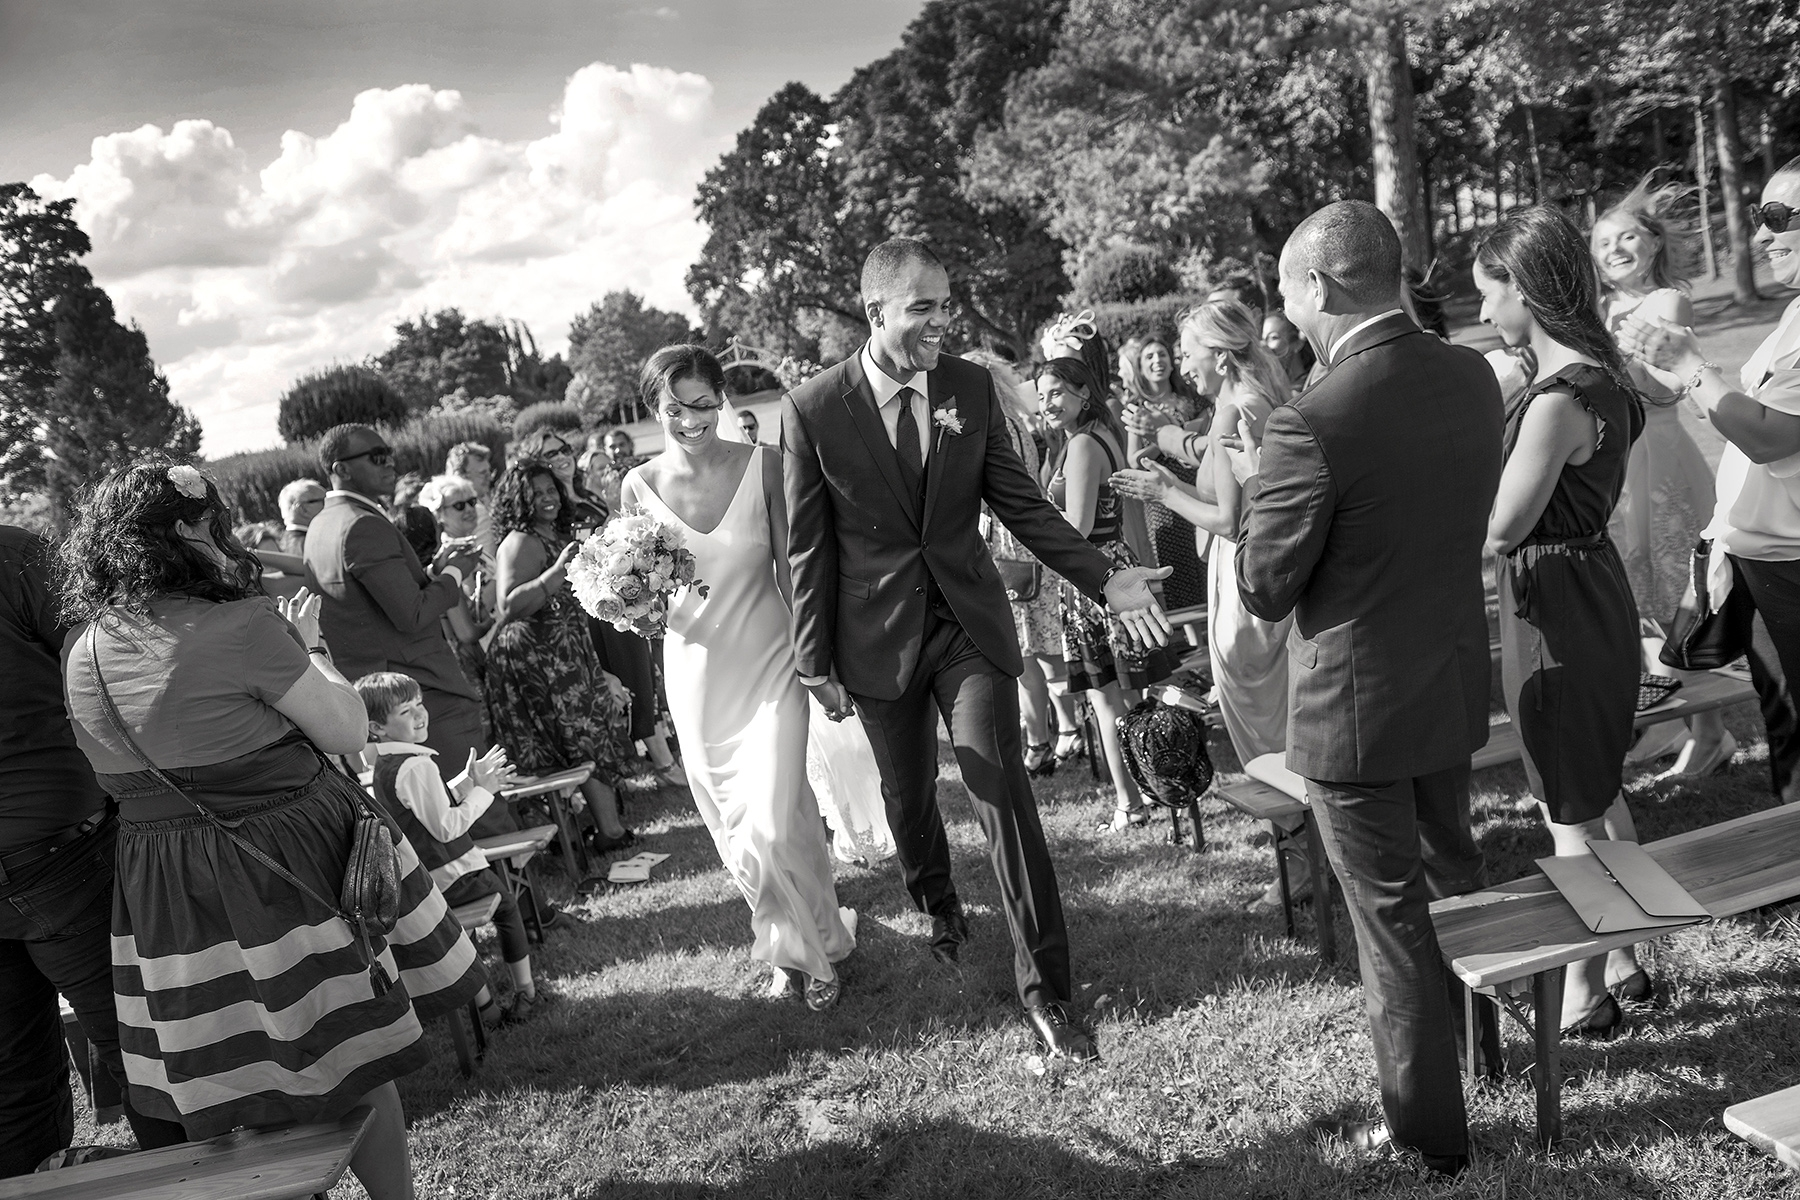 Wedding-photographers-south-wales-walking-down-the-aisle